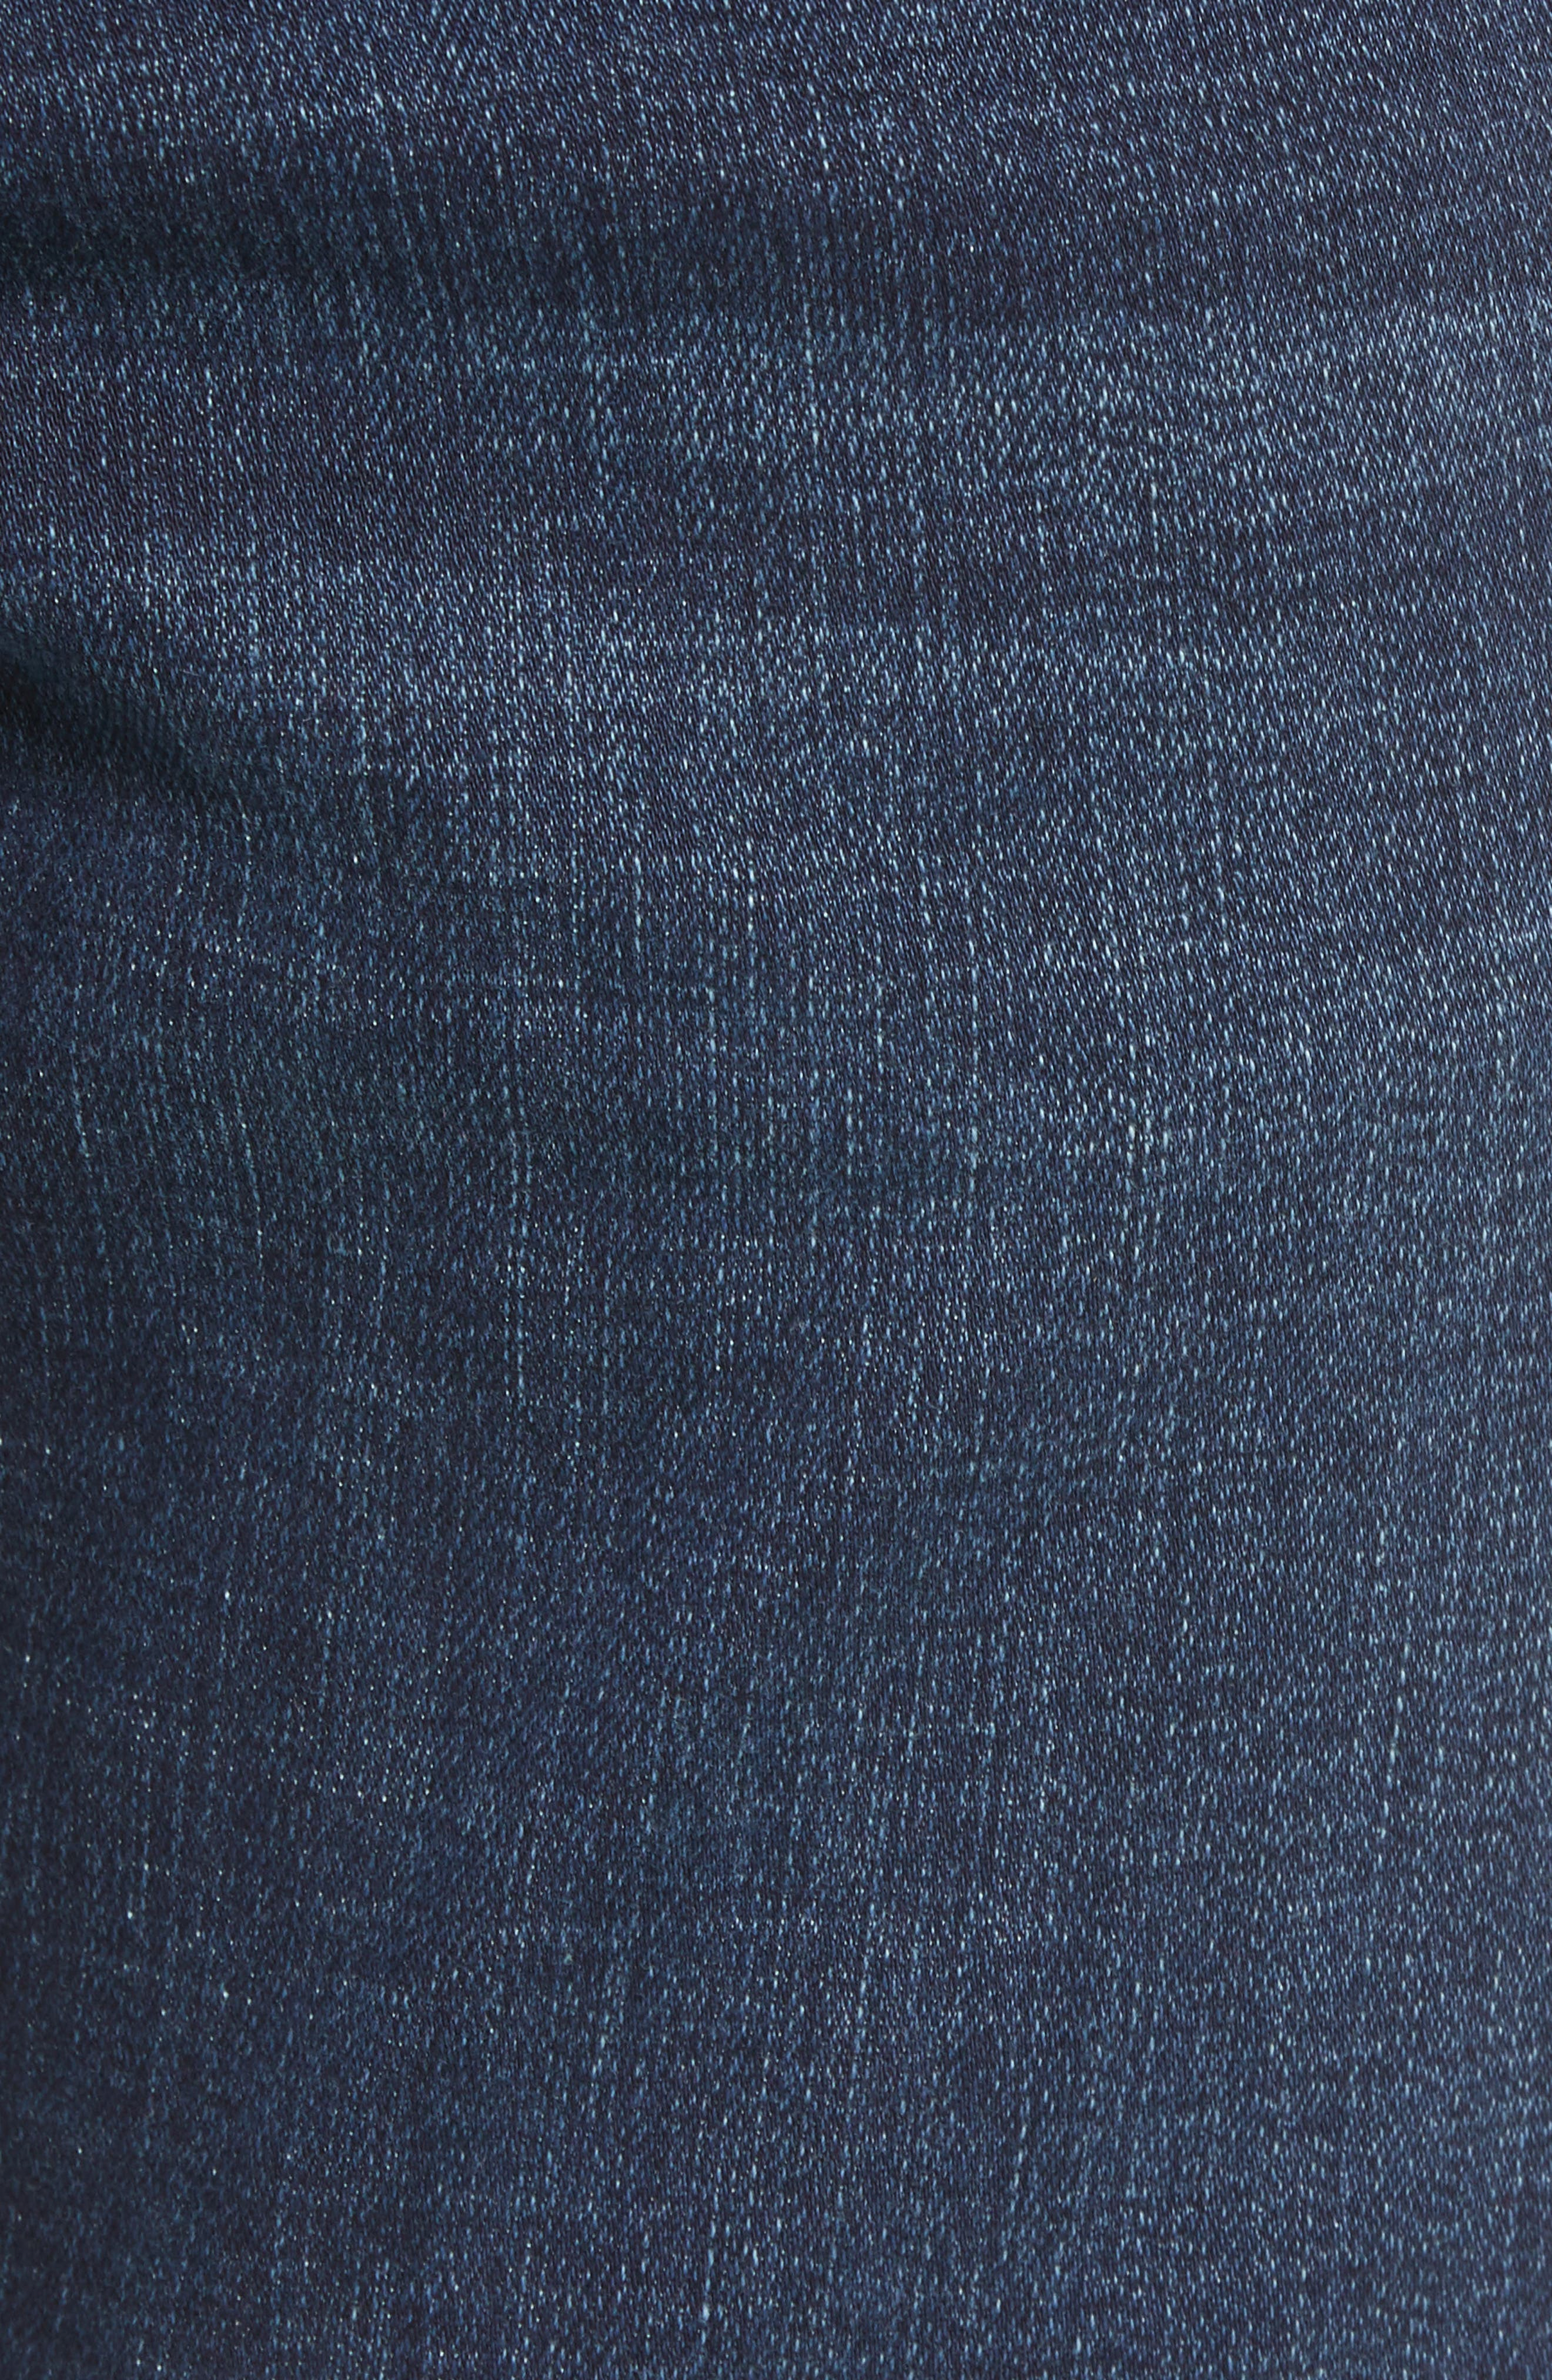 Relaxed Fit Jeans,                             Alternate thumbnail 5, color,                             Navajo Dark